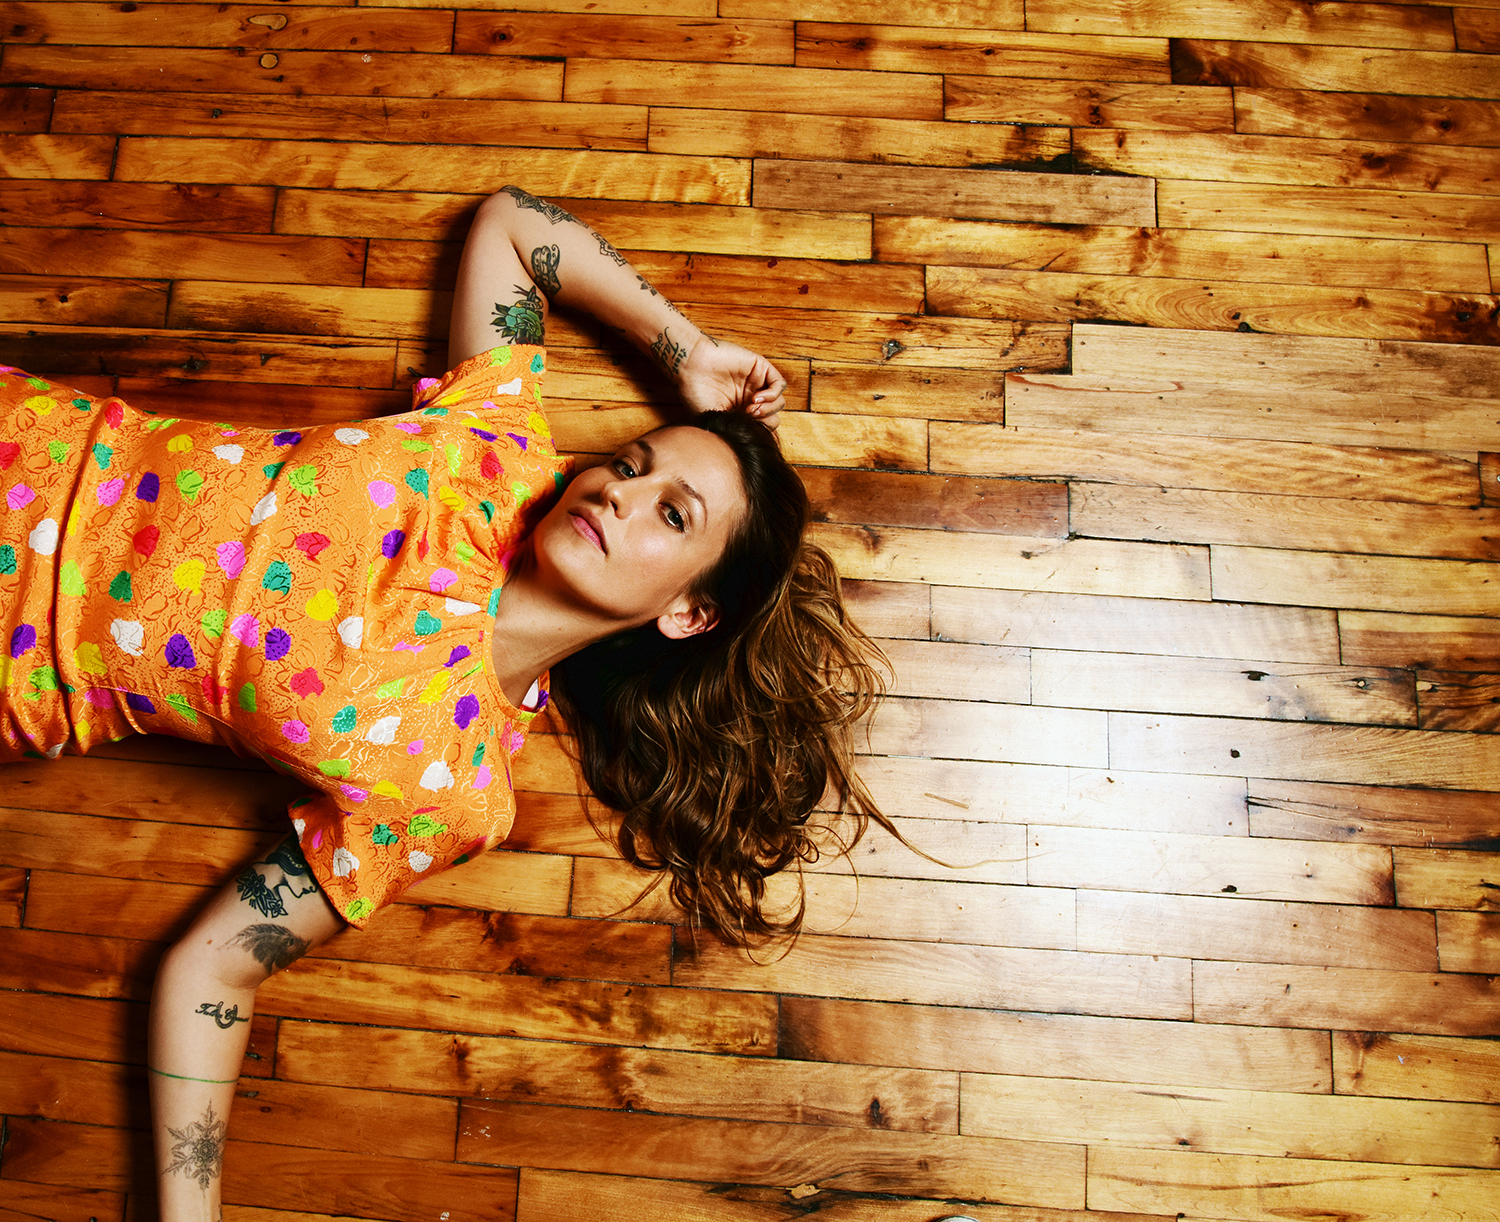 domino kirke dating my daughter is dating an older boy